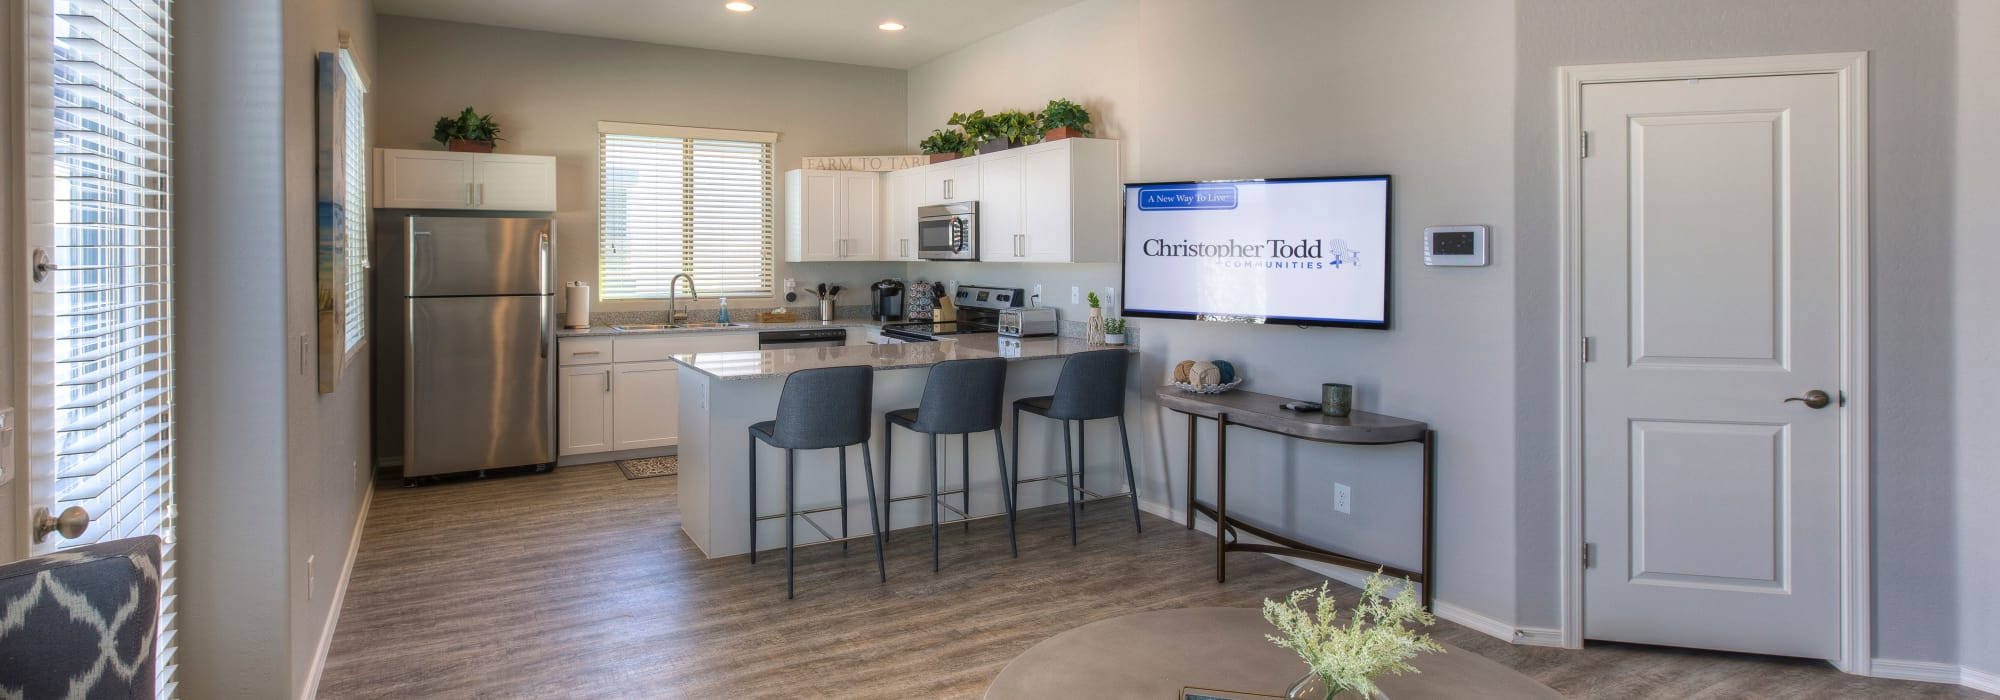 Hardwood floors in open-concept layout at Christopher Todd Communities at Country Place in Tolleson, Arizona